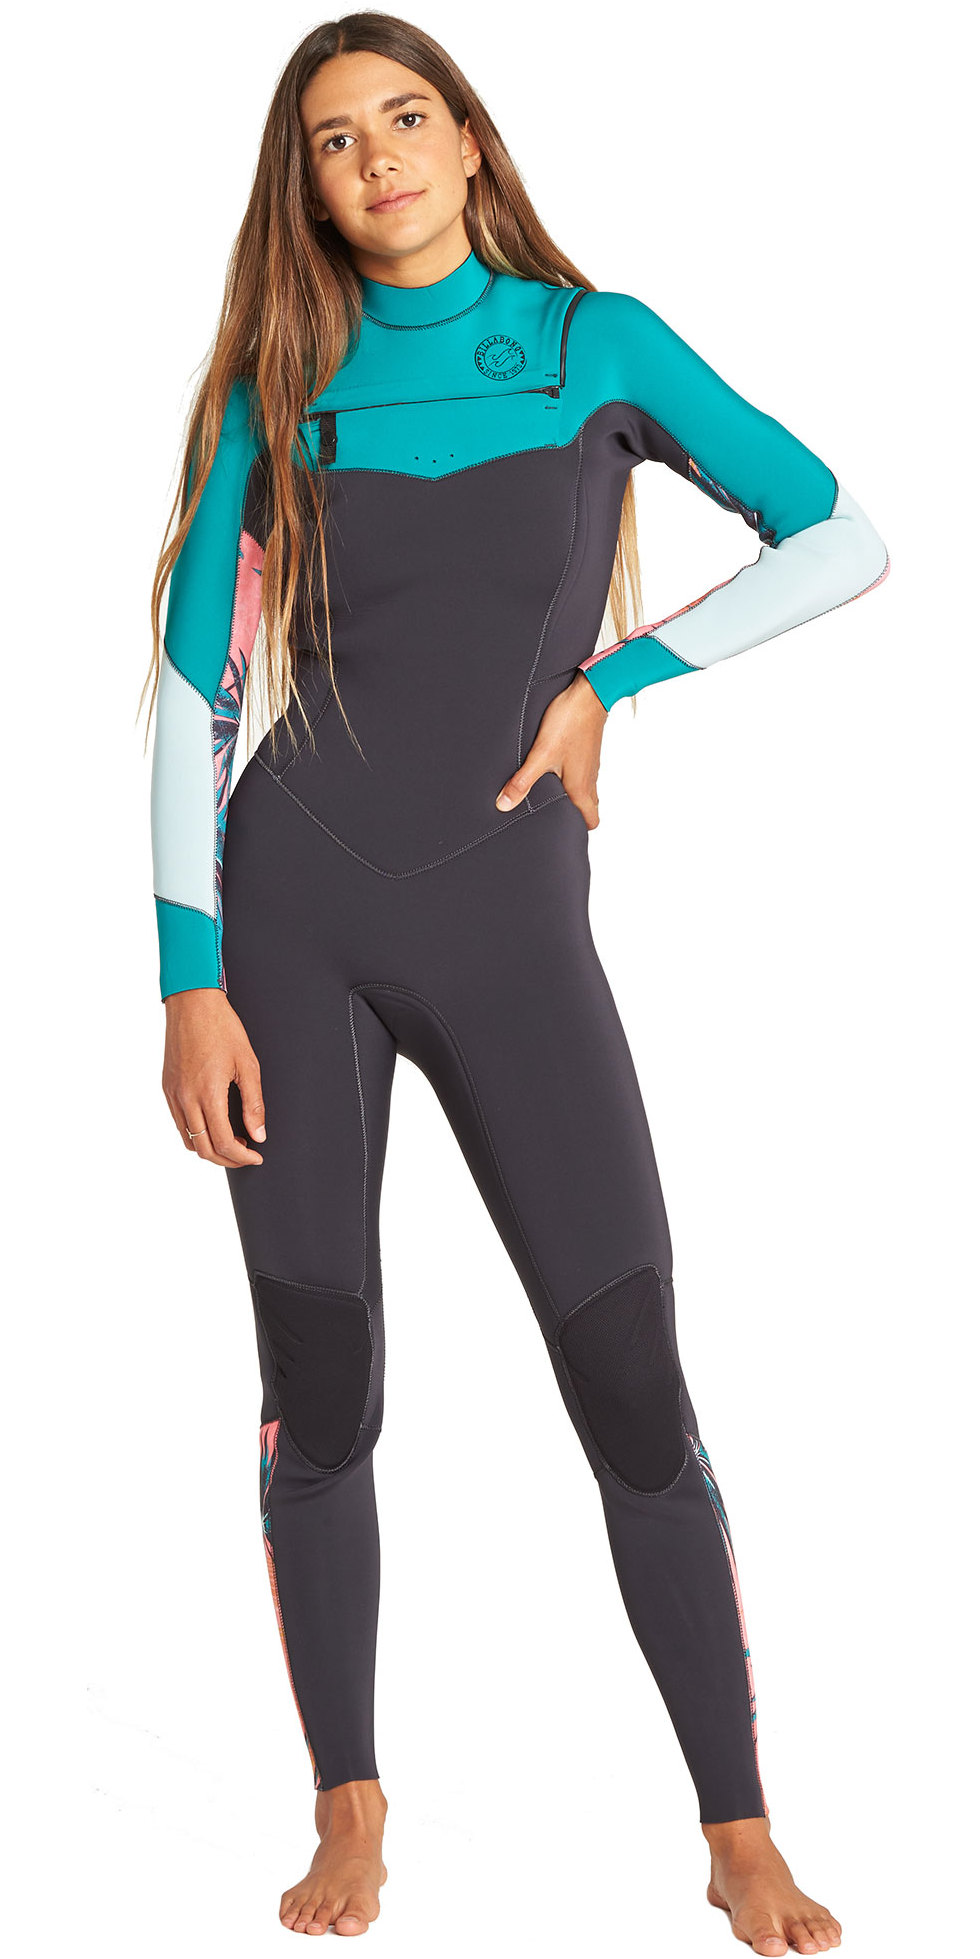 c38d8d70b37 2019 Billabong Womens Salty Dayz 3 2mm Chest Zip Wetsuit Palm Green N43g30  - Womens - 3mm